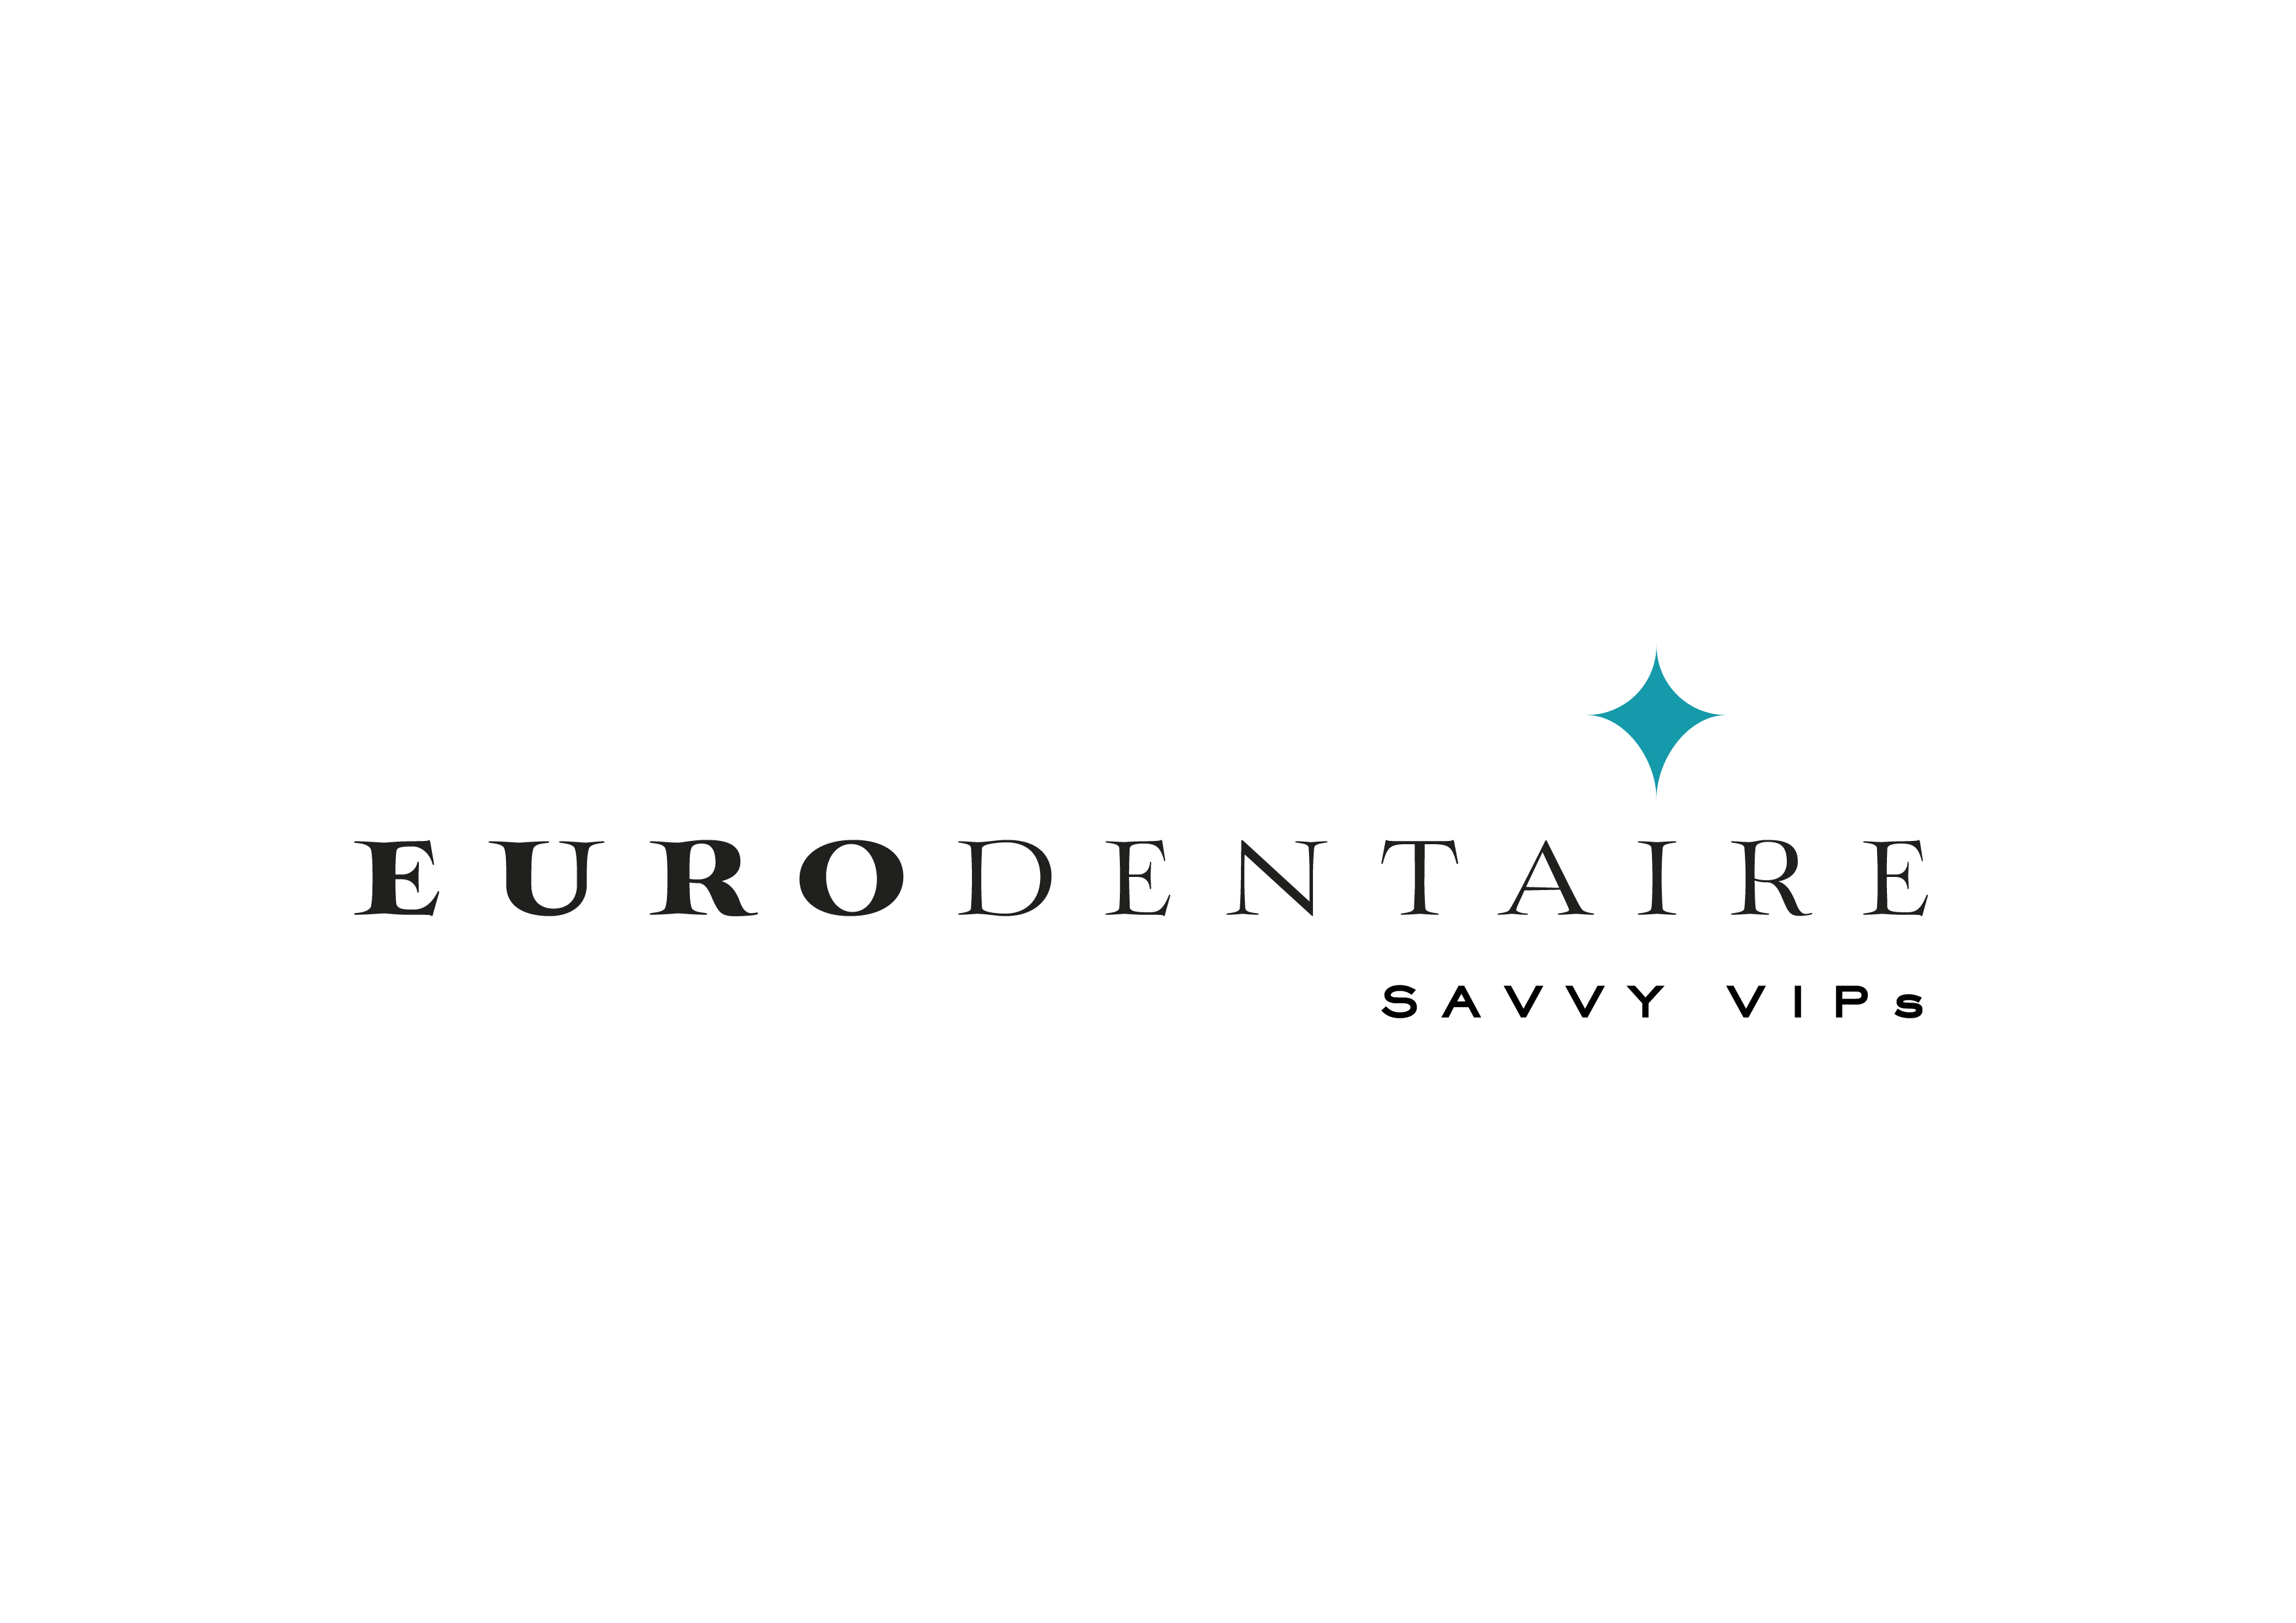 Eurodentaire VIP services